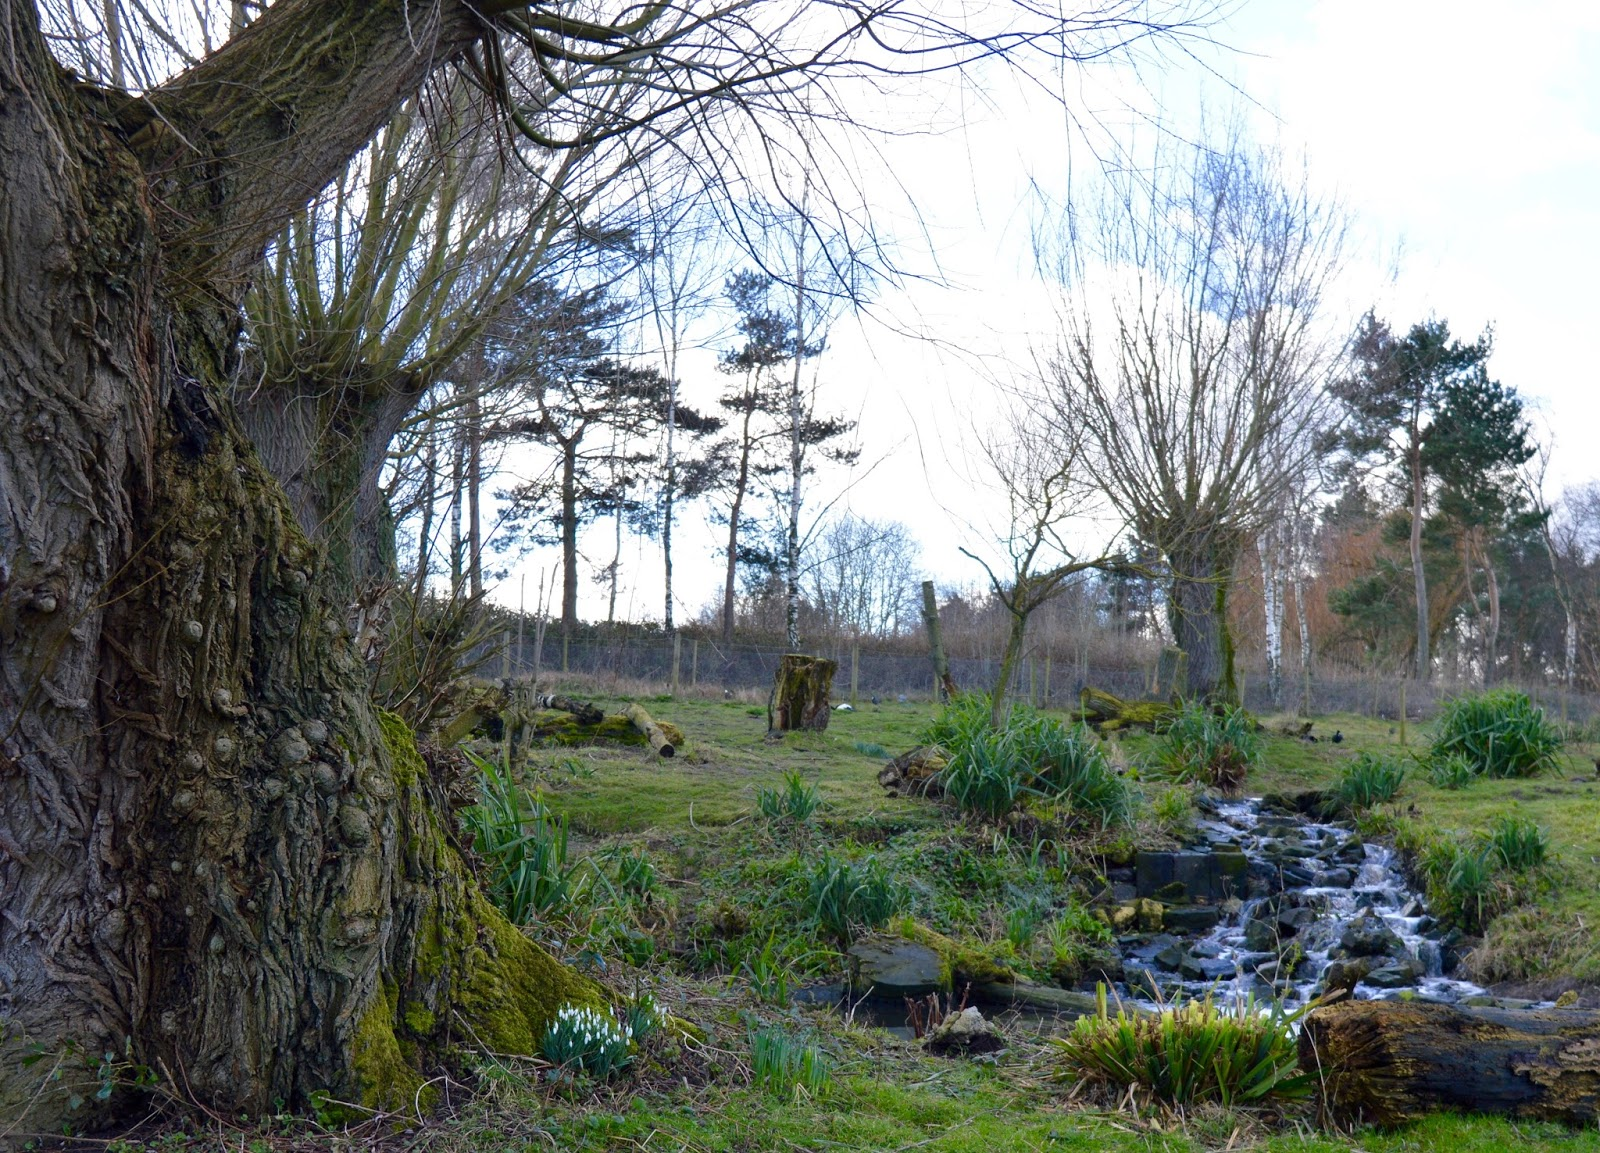 WWT Washington Wetland Centre | An Accessible North East Day Out for the Whole Family - waterfall and snowdrops in animal enclosure